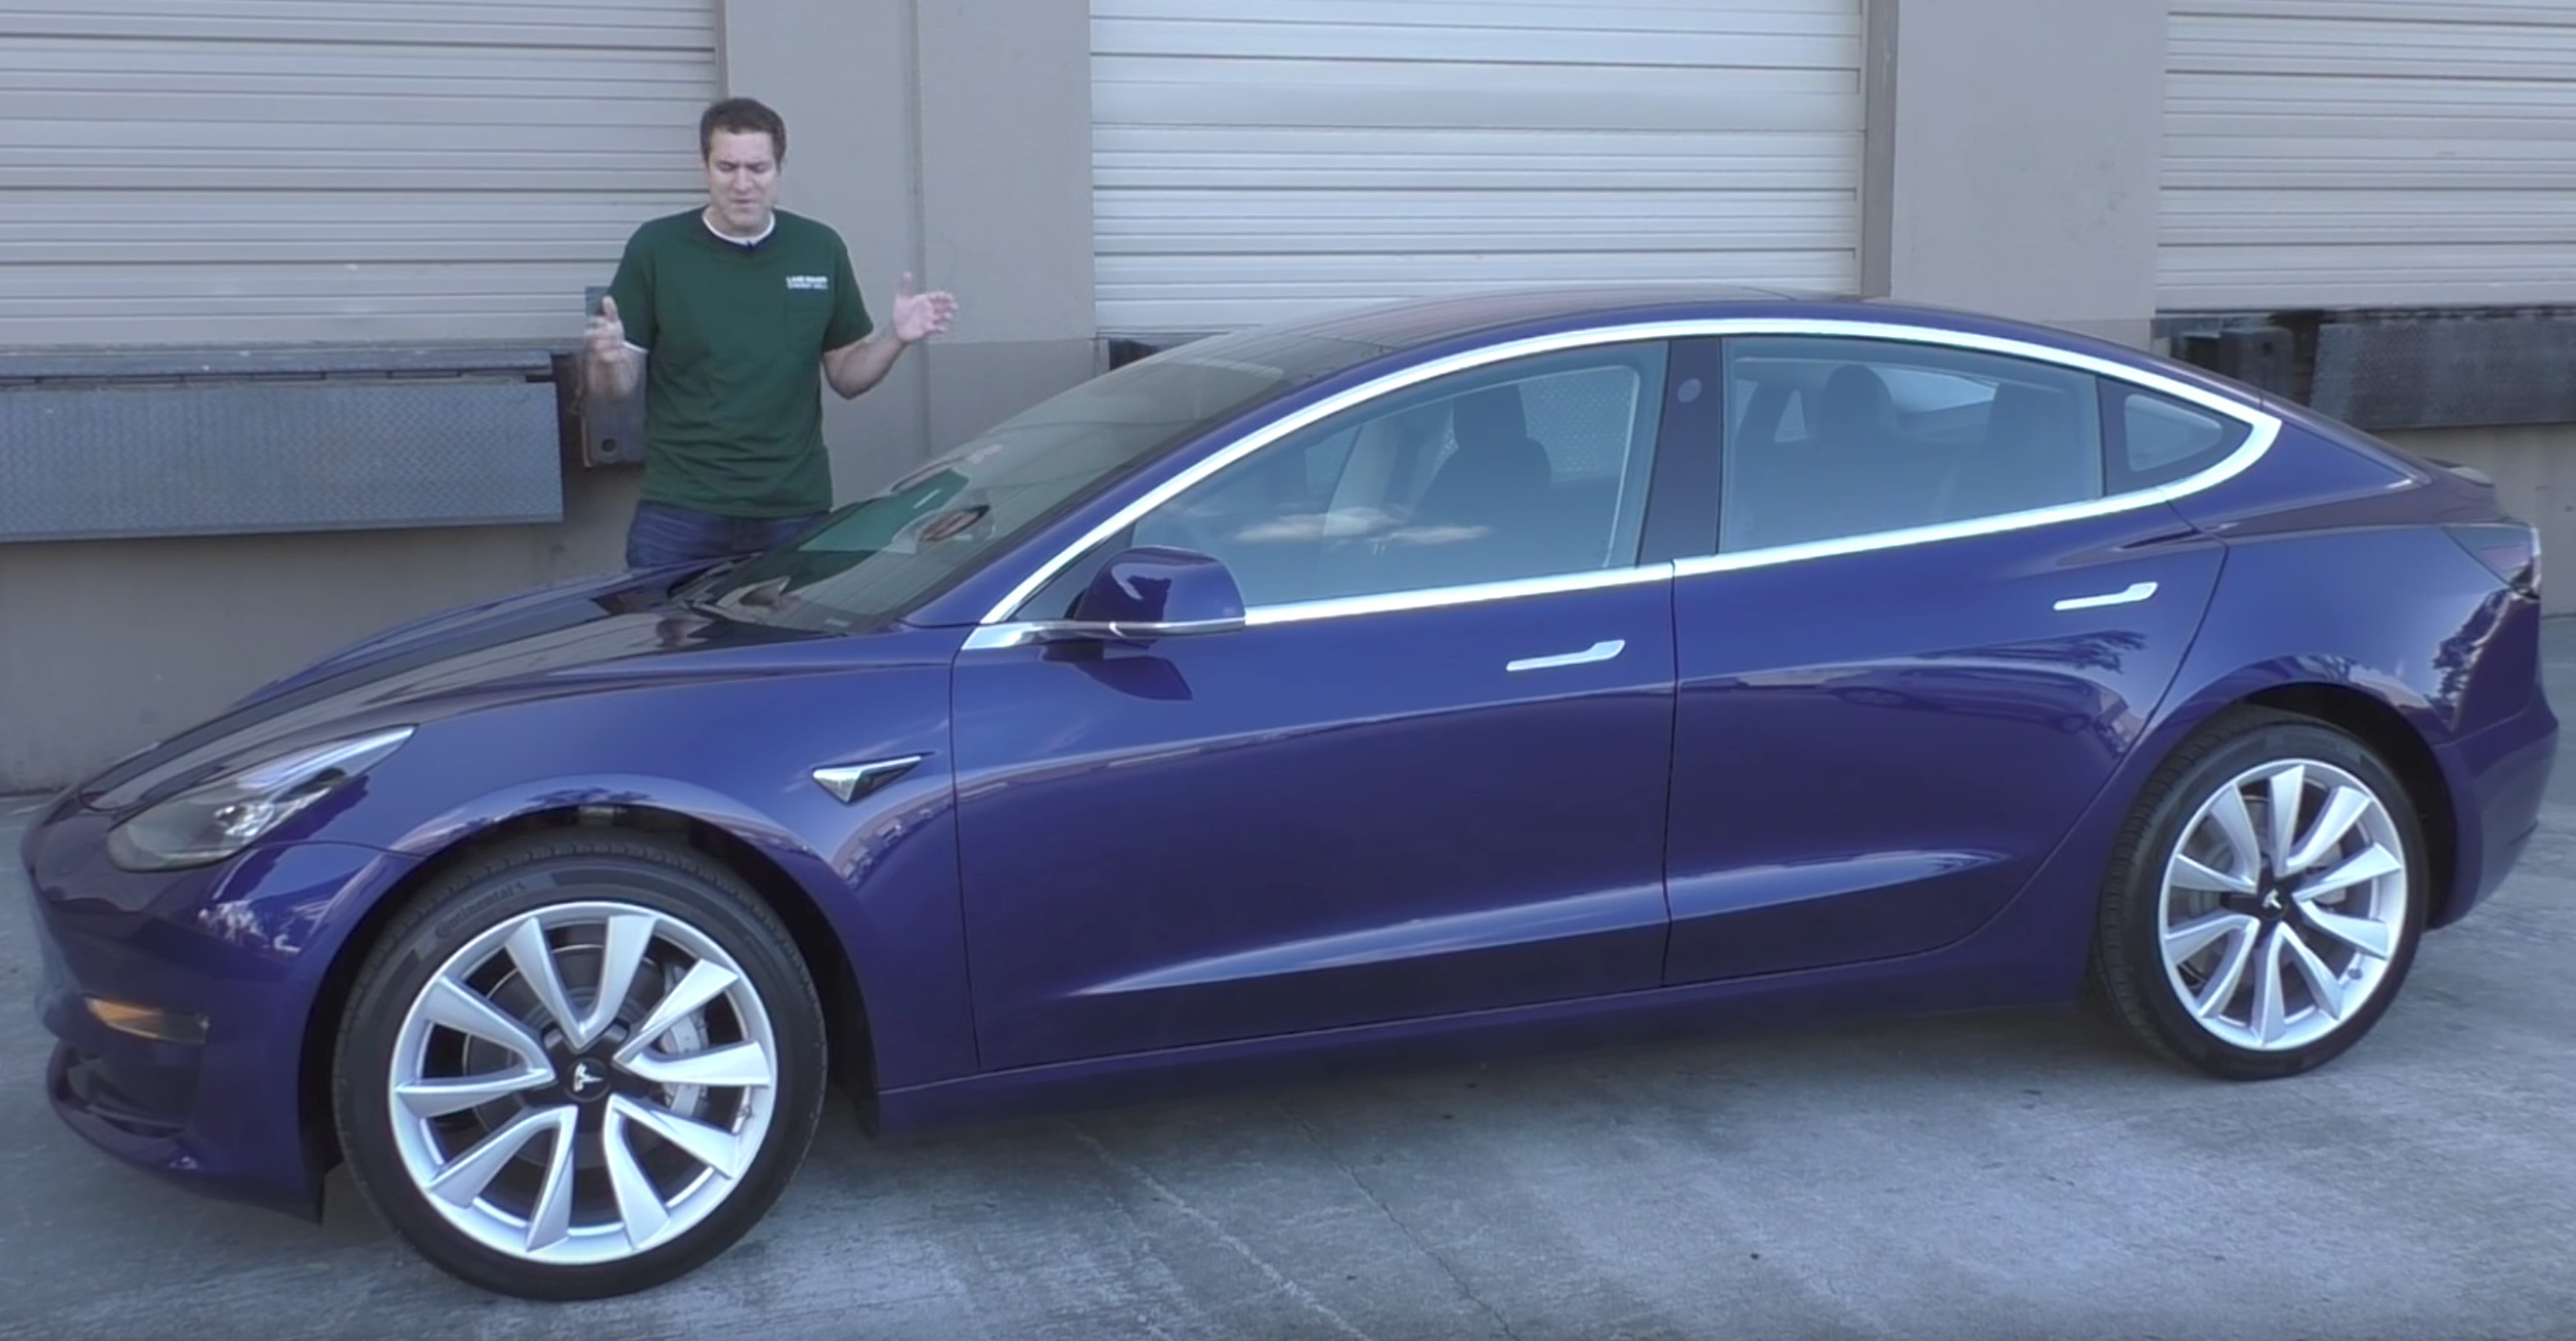 Model 3 Review >> Tesla Model 3 Review Auto Journalist Calls It Coolest Car Of The Year